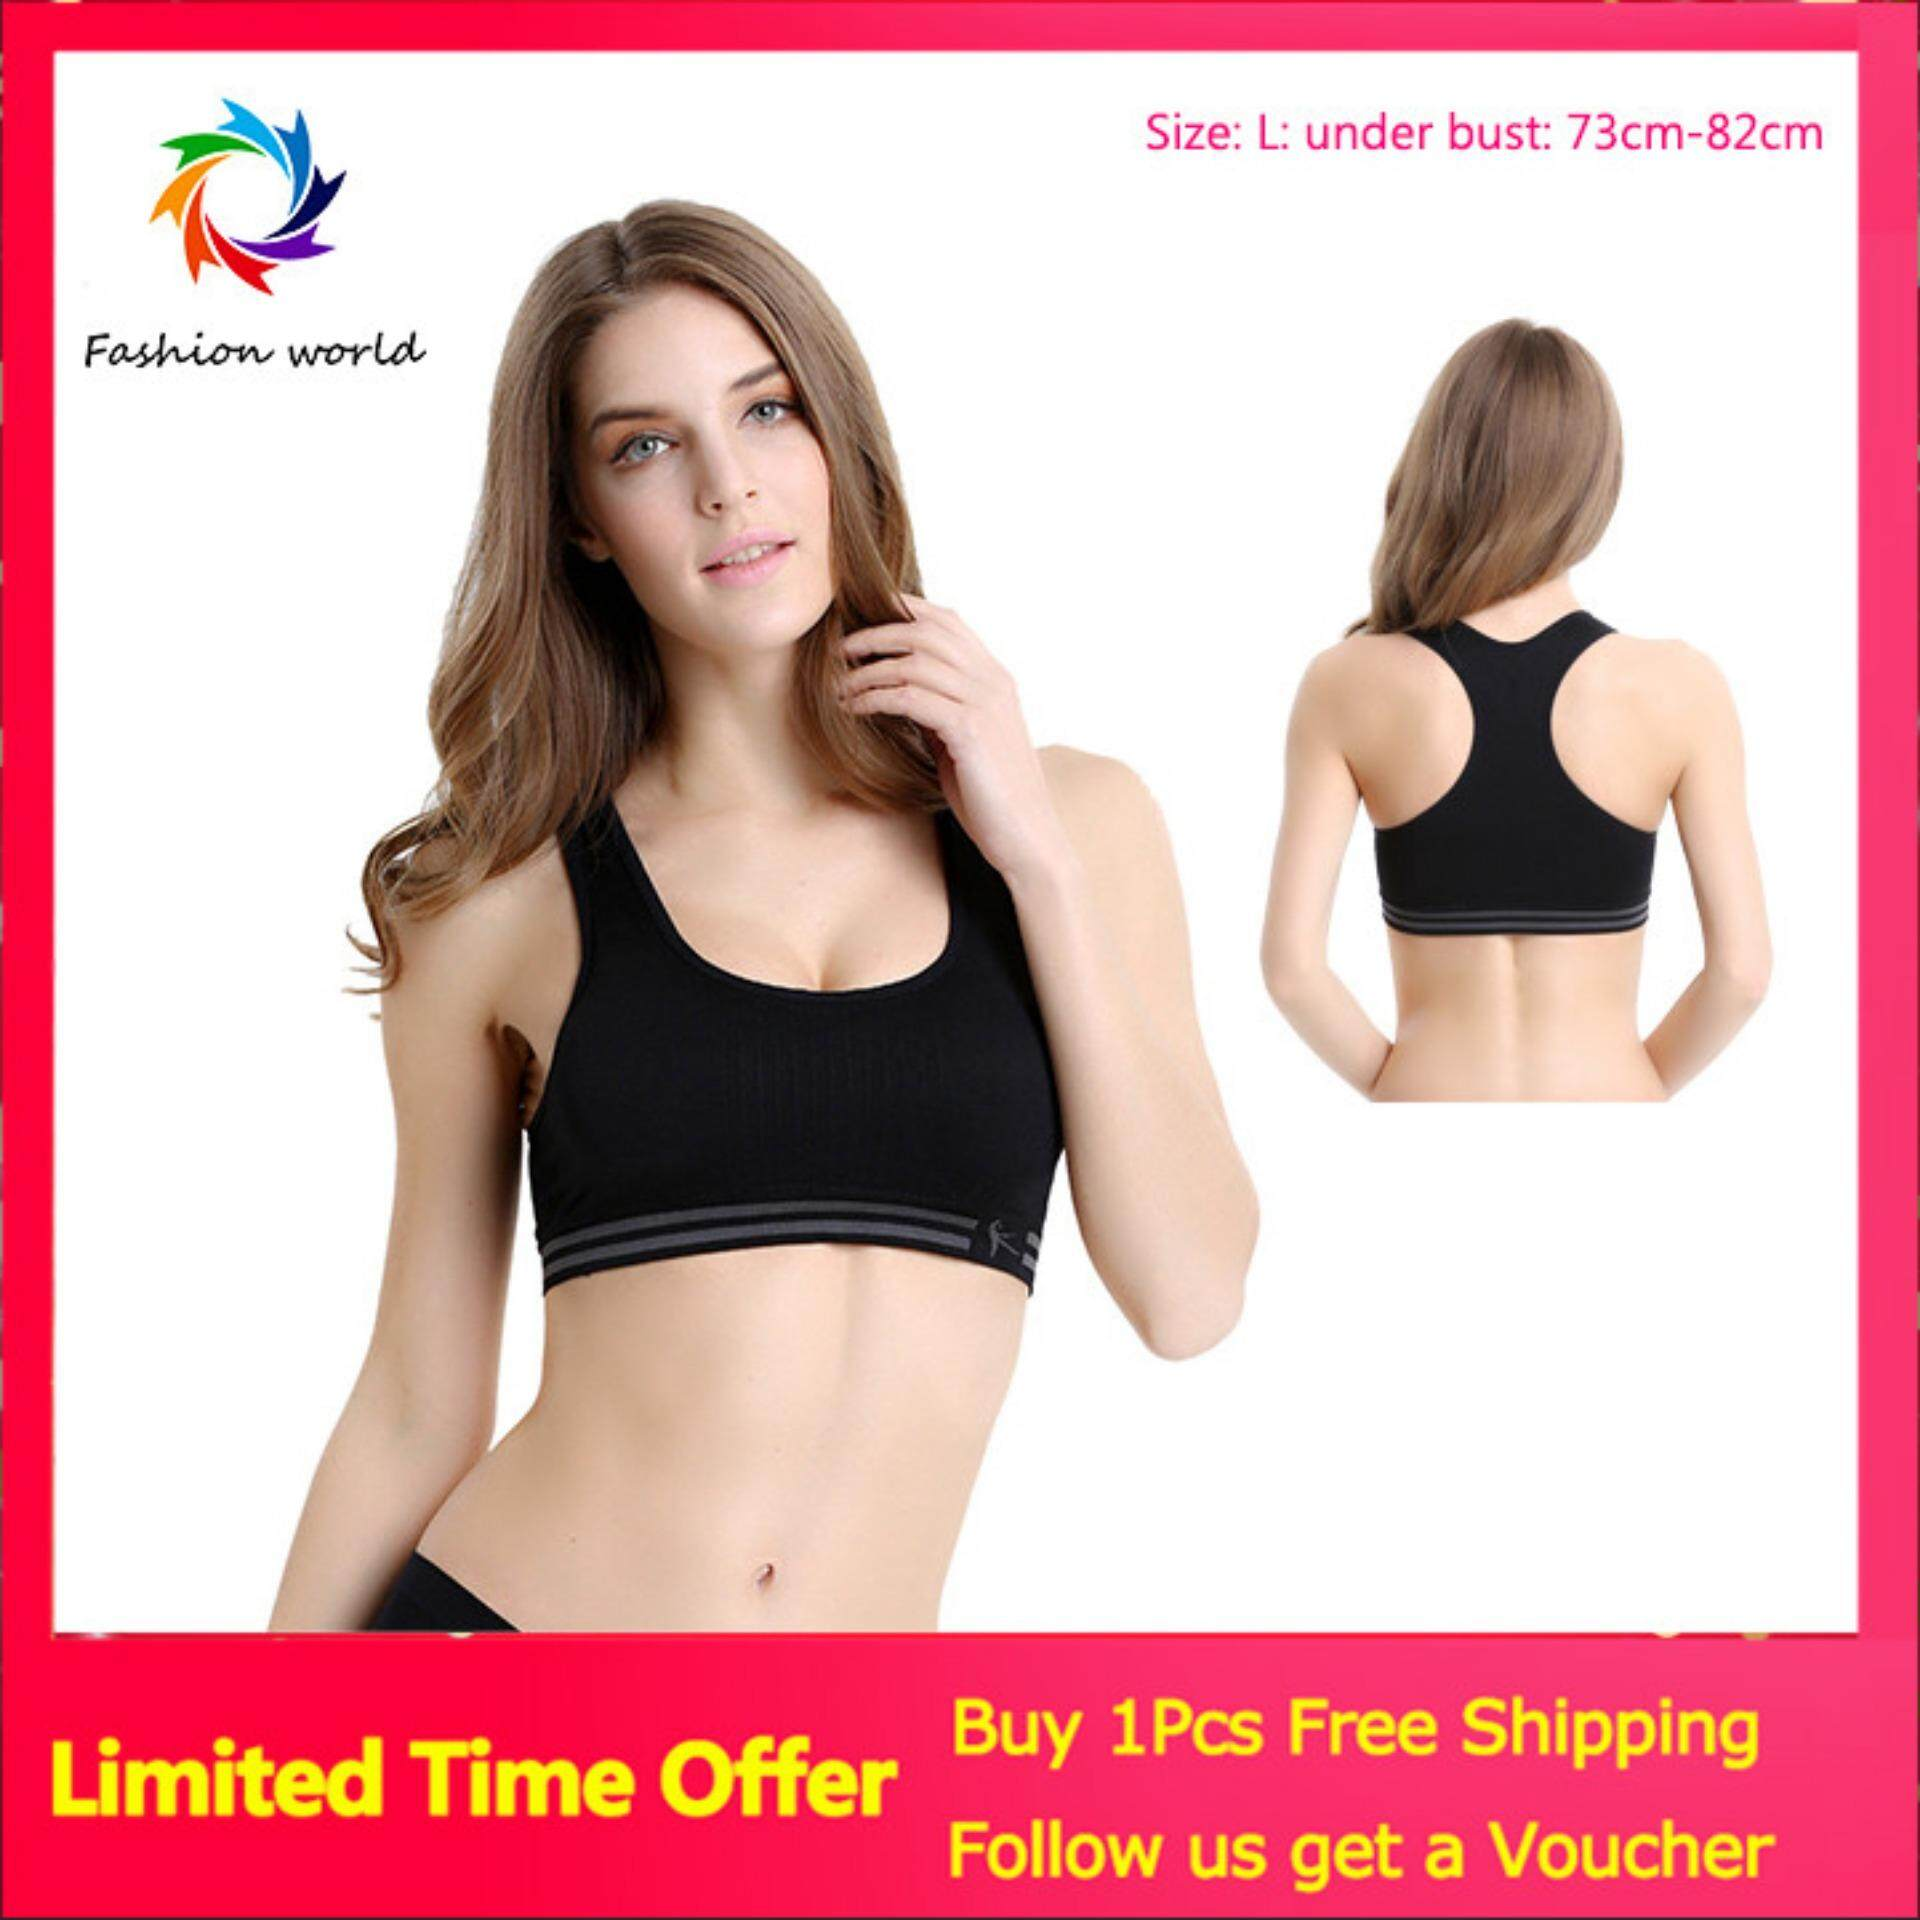 b3d1e6b6e16 【Global+Express+Delivery+Free+shipping】Women Seamless Racerback Sports Bra  Top Yoga Fitness Padded Stretch Workout Black (MY)